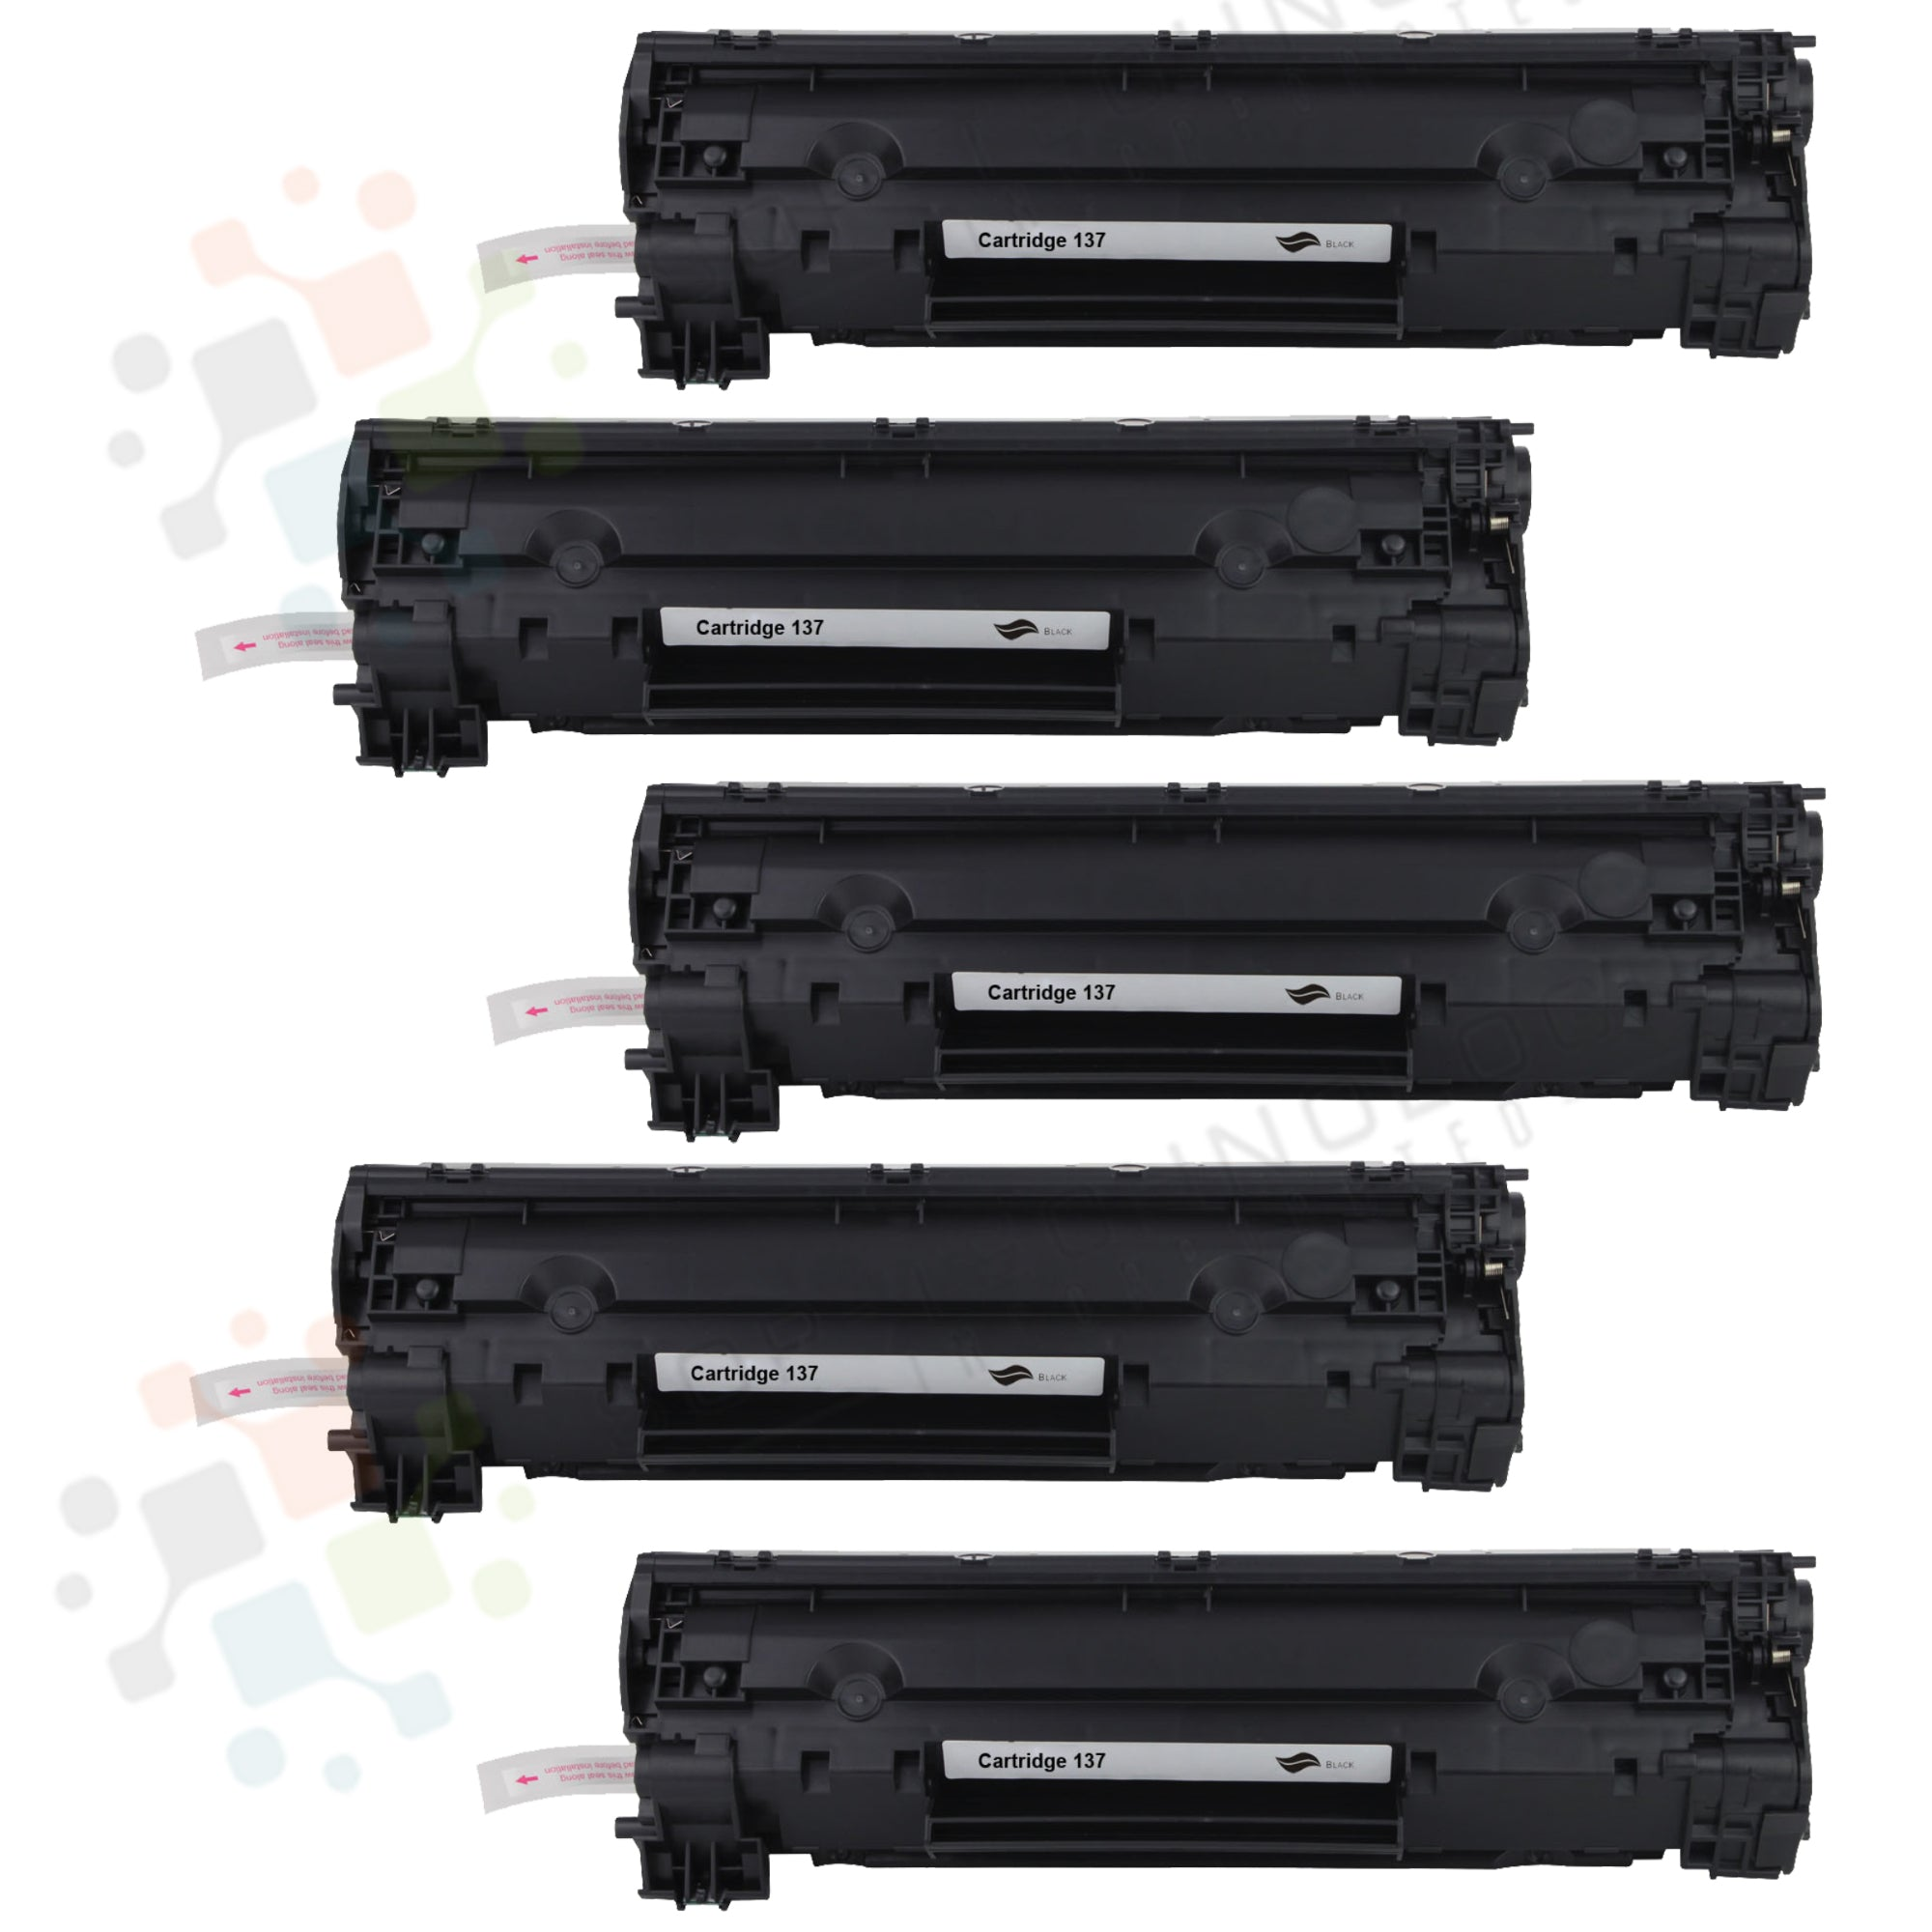 5pk Canon 137 Compatible Toner Cartridge for Canon - SOP-TECHNOLOGIES, INC.